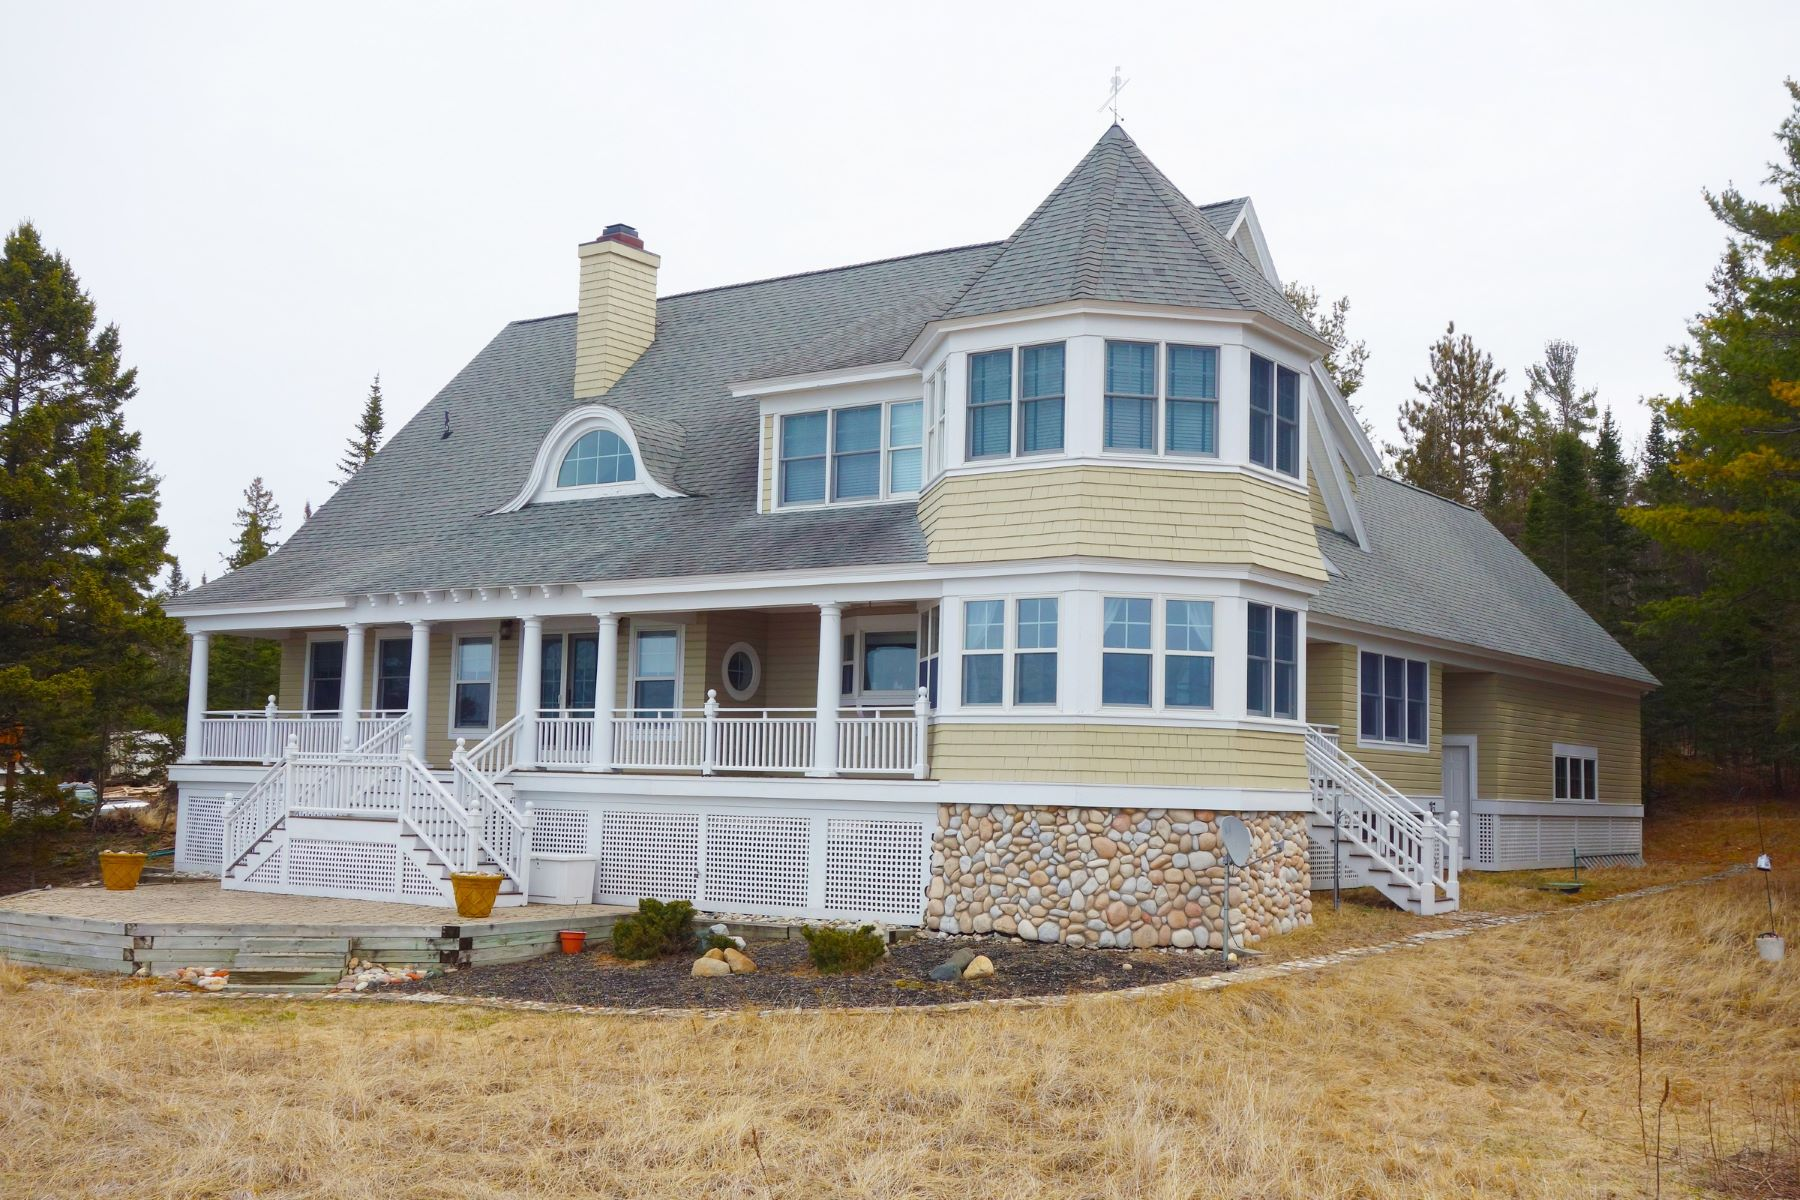 Single Family Home for Sale at Lake Michigan Beach House 8245 Sturgeon Bay Drive Harbor Springs, Michigan, 49740 United States